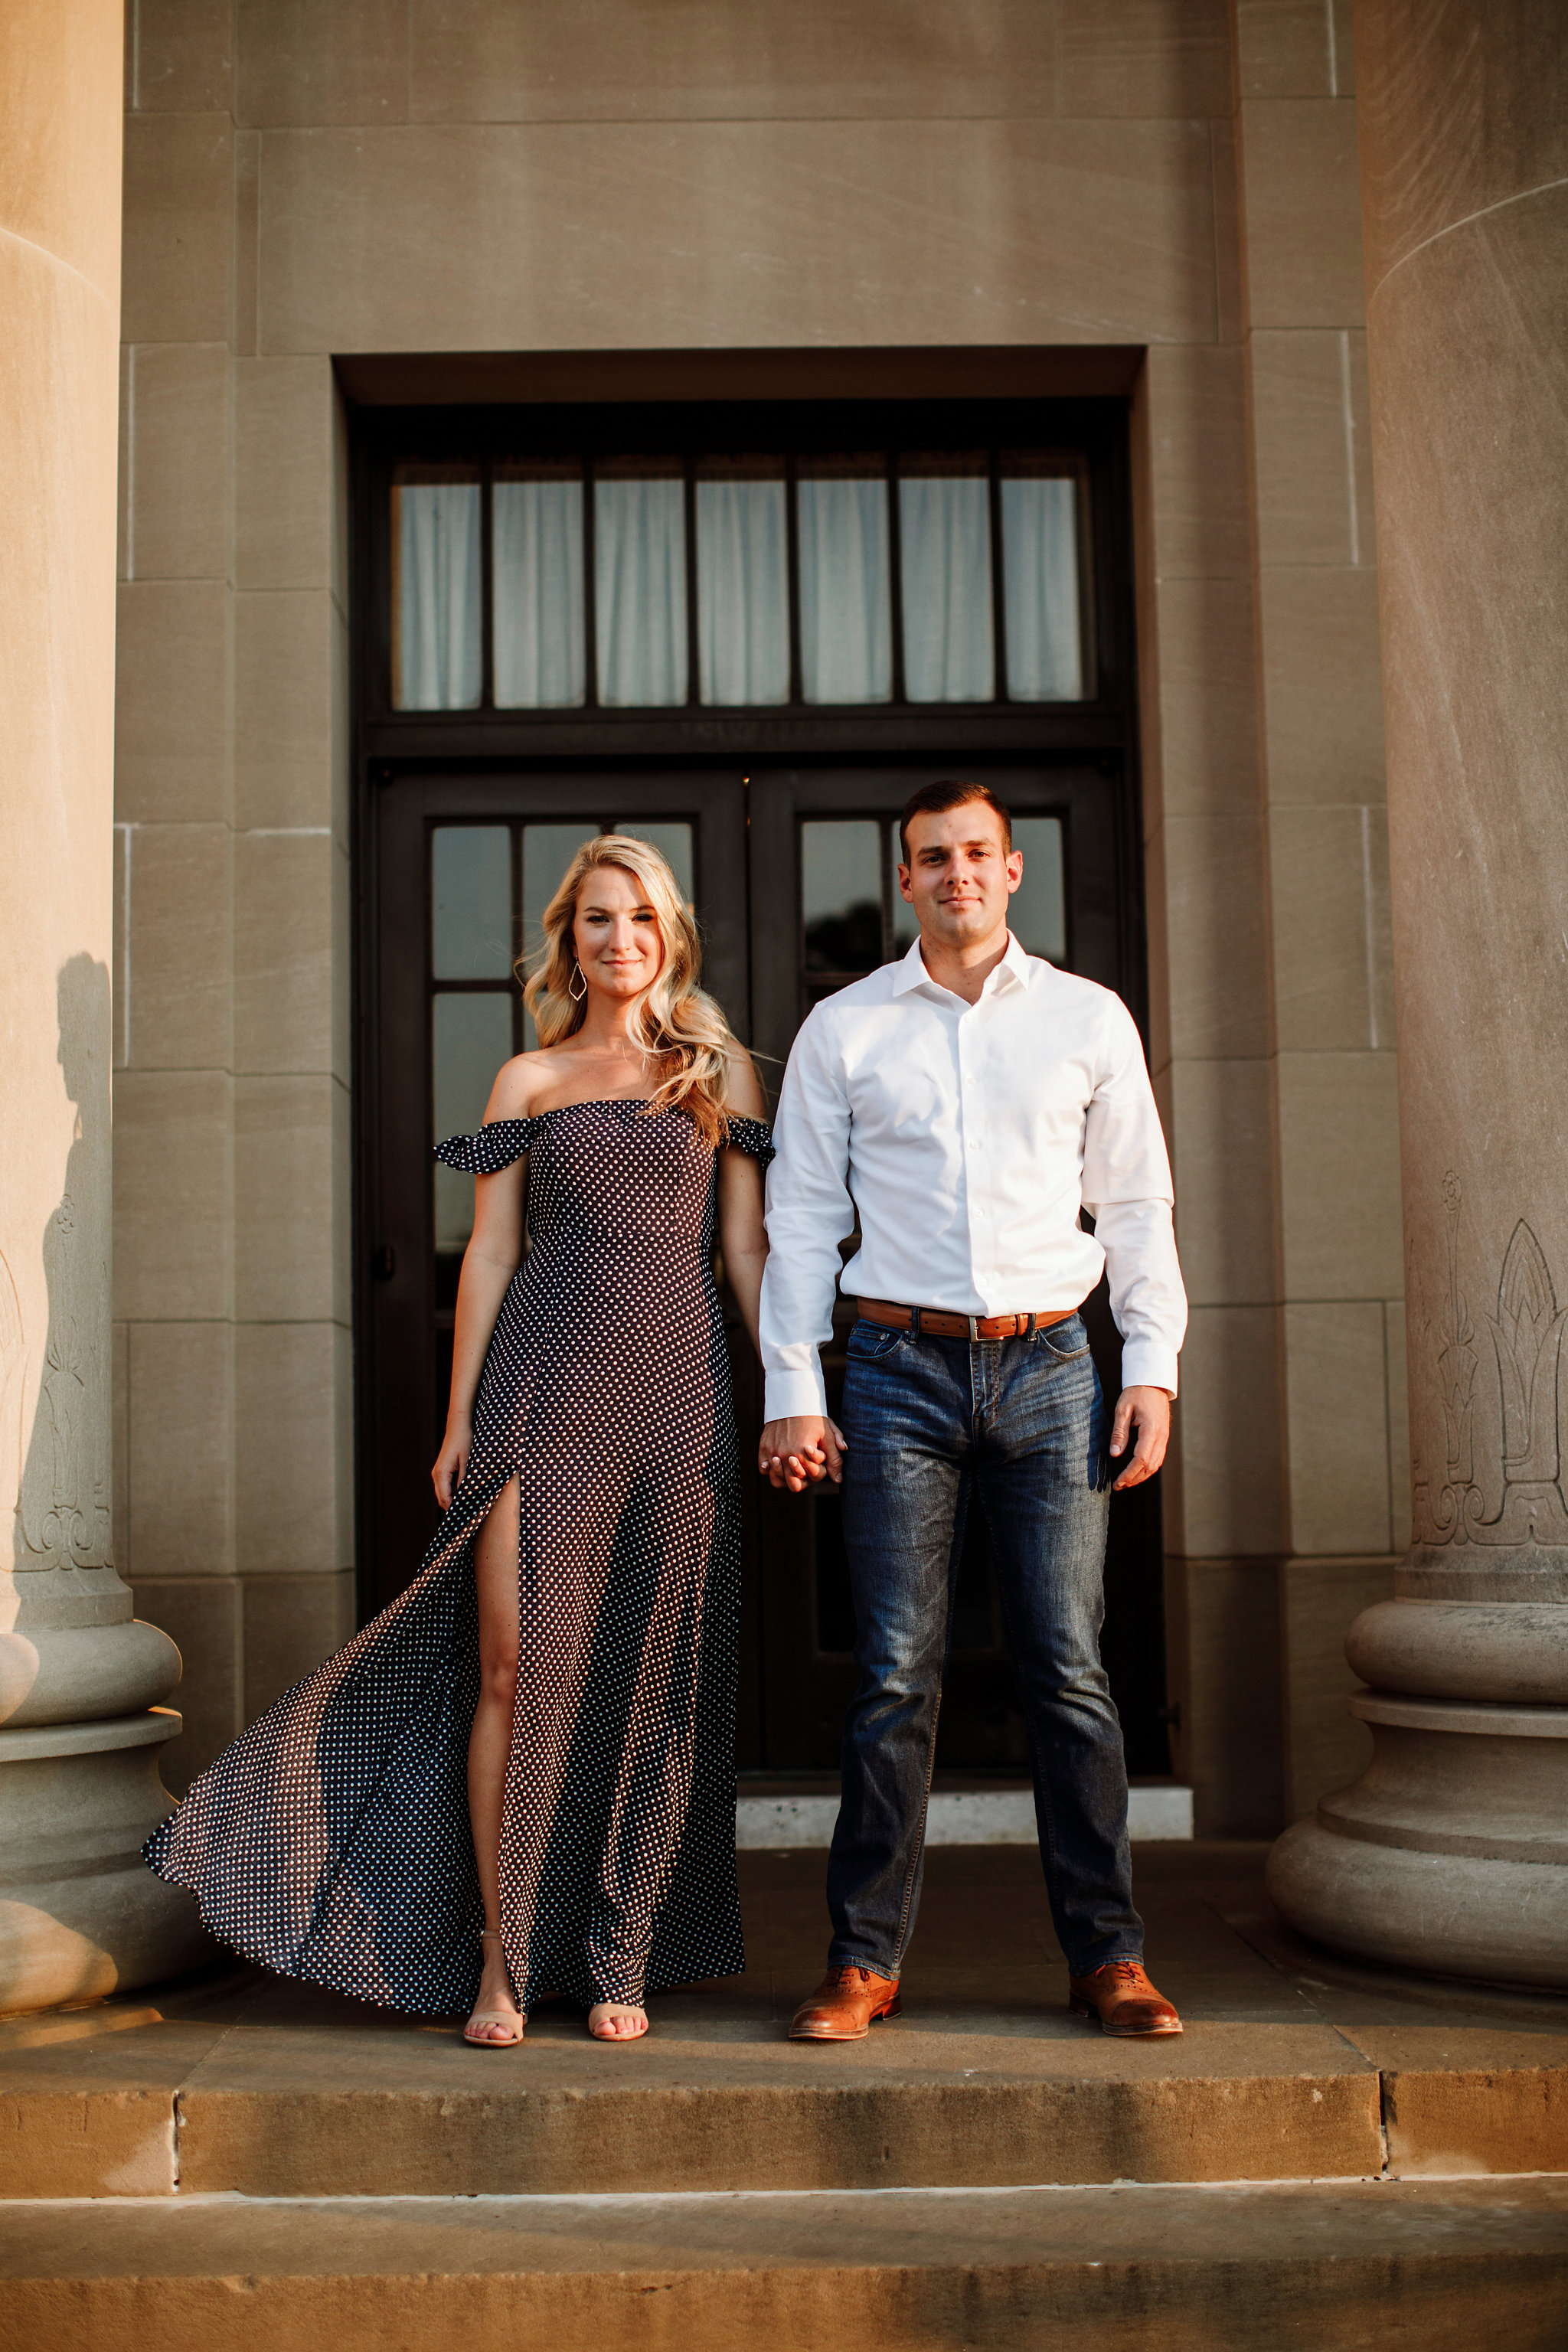 Nelson Museum and Crossroads Engagement Session_Loose Mansion Winter Wedding_Kindling Wedding Photography_118.JPG